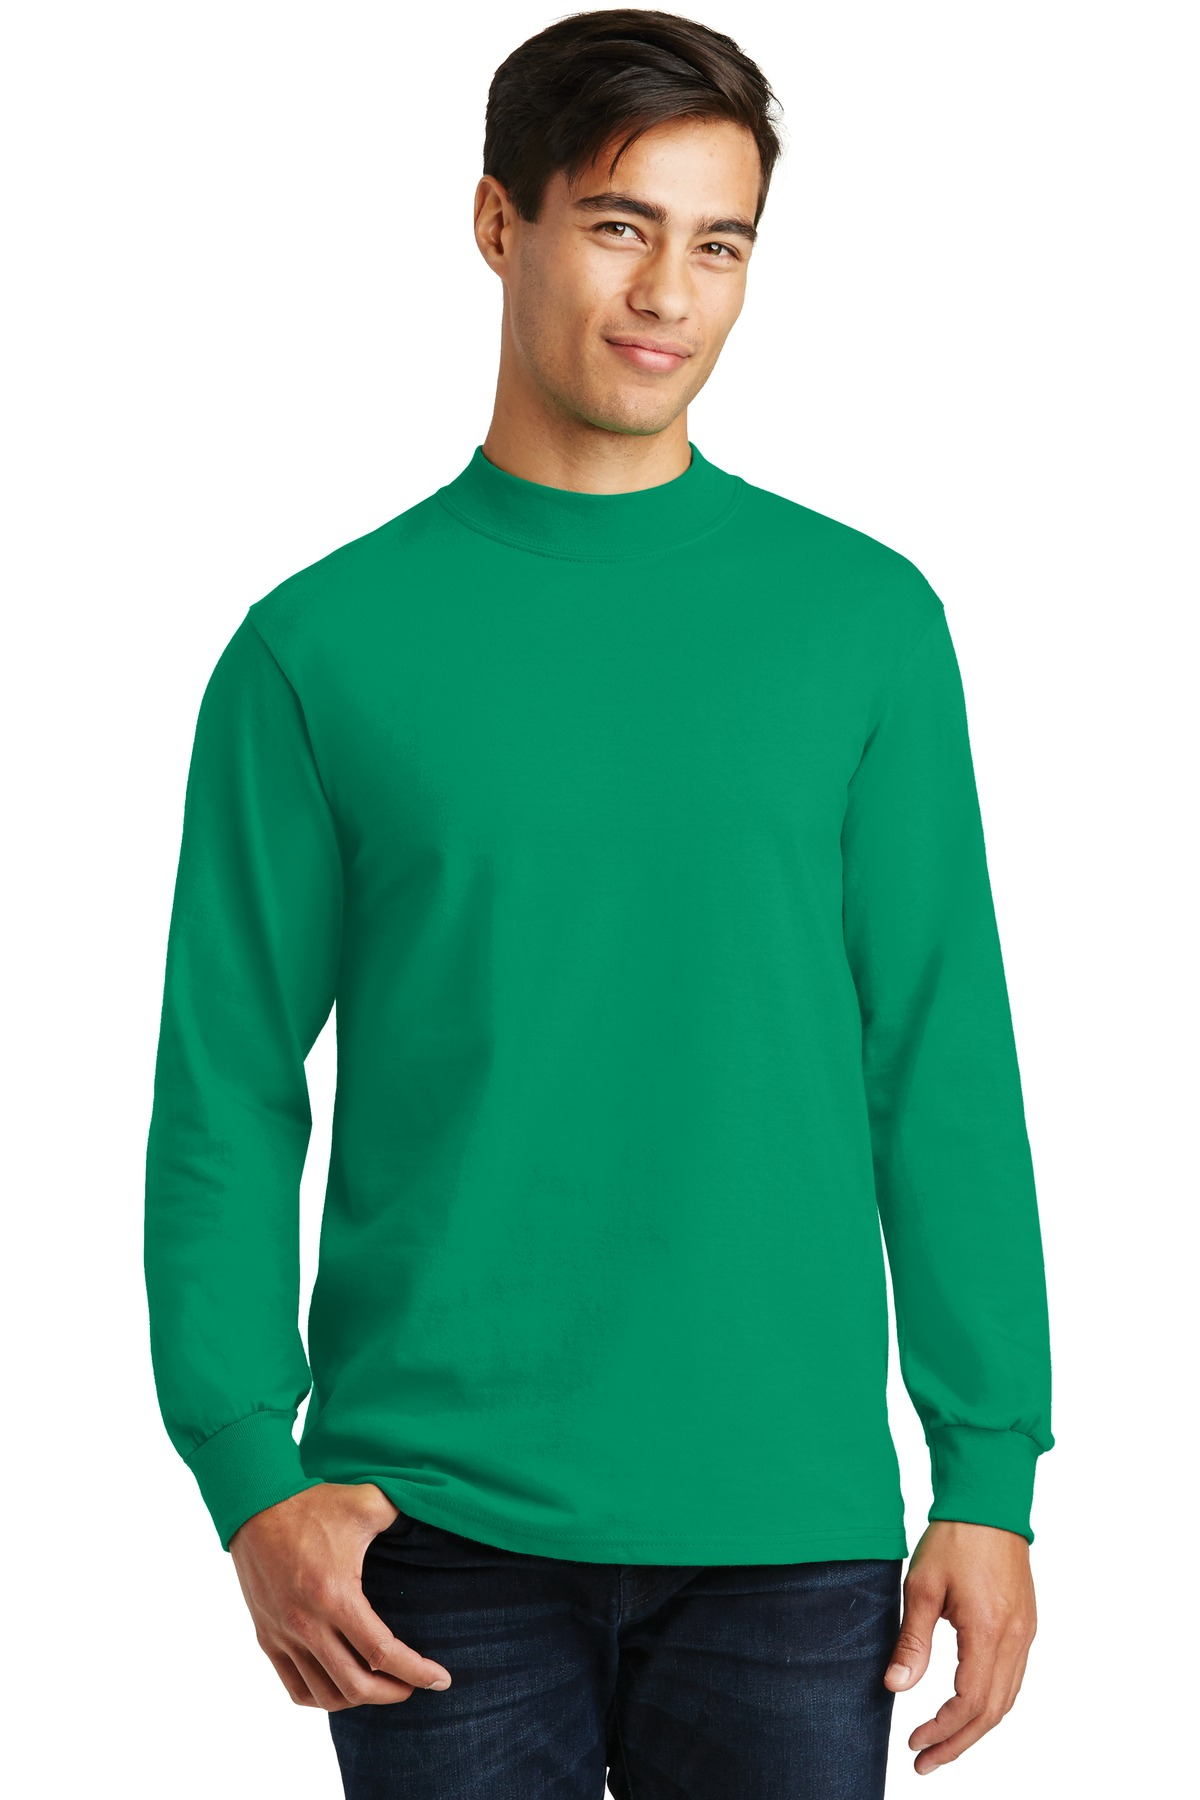 GIS - Flight Deck Jersey Mock Turtleneck.-GIS Inc